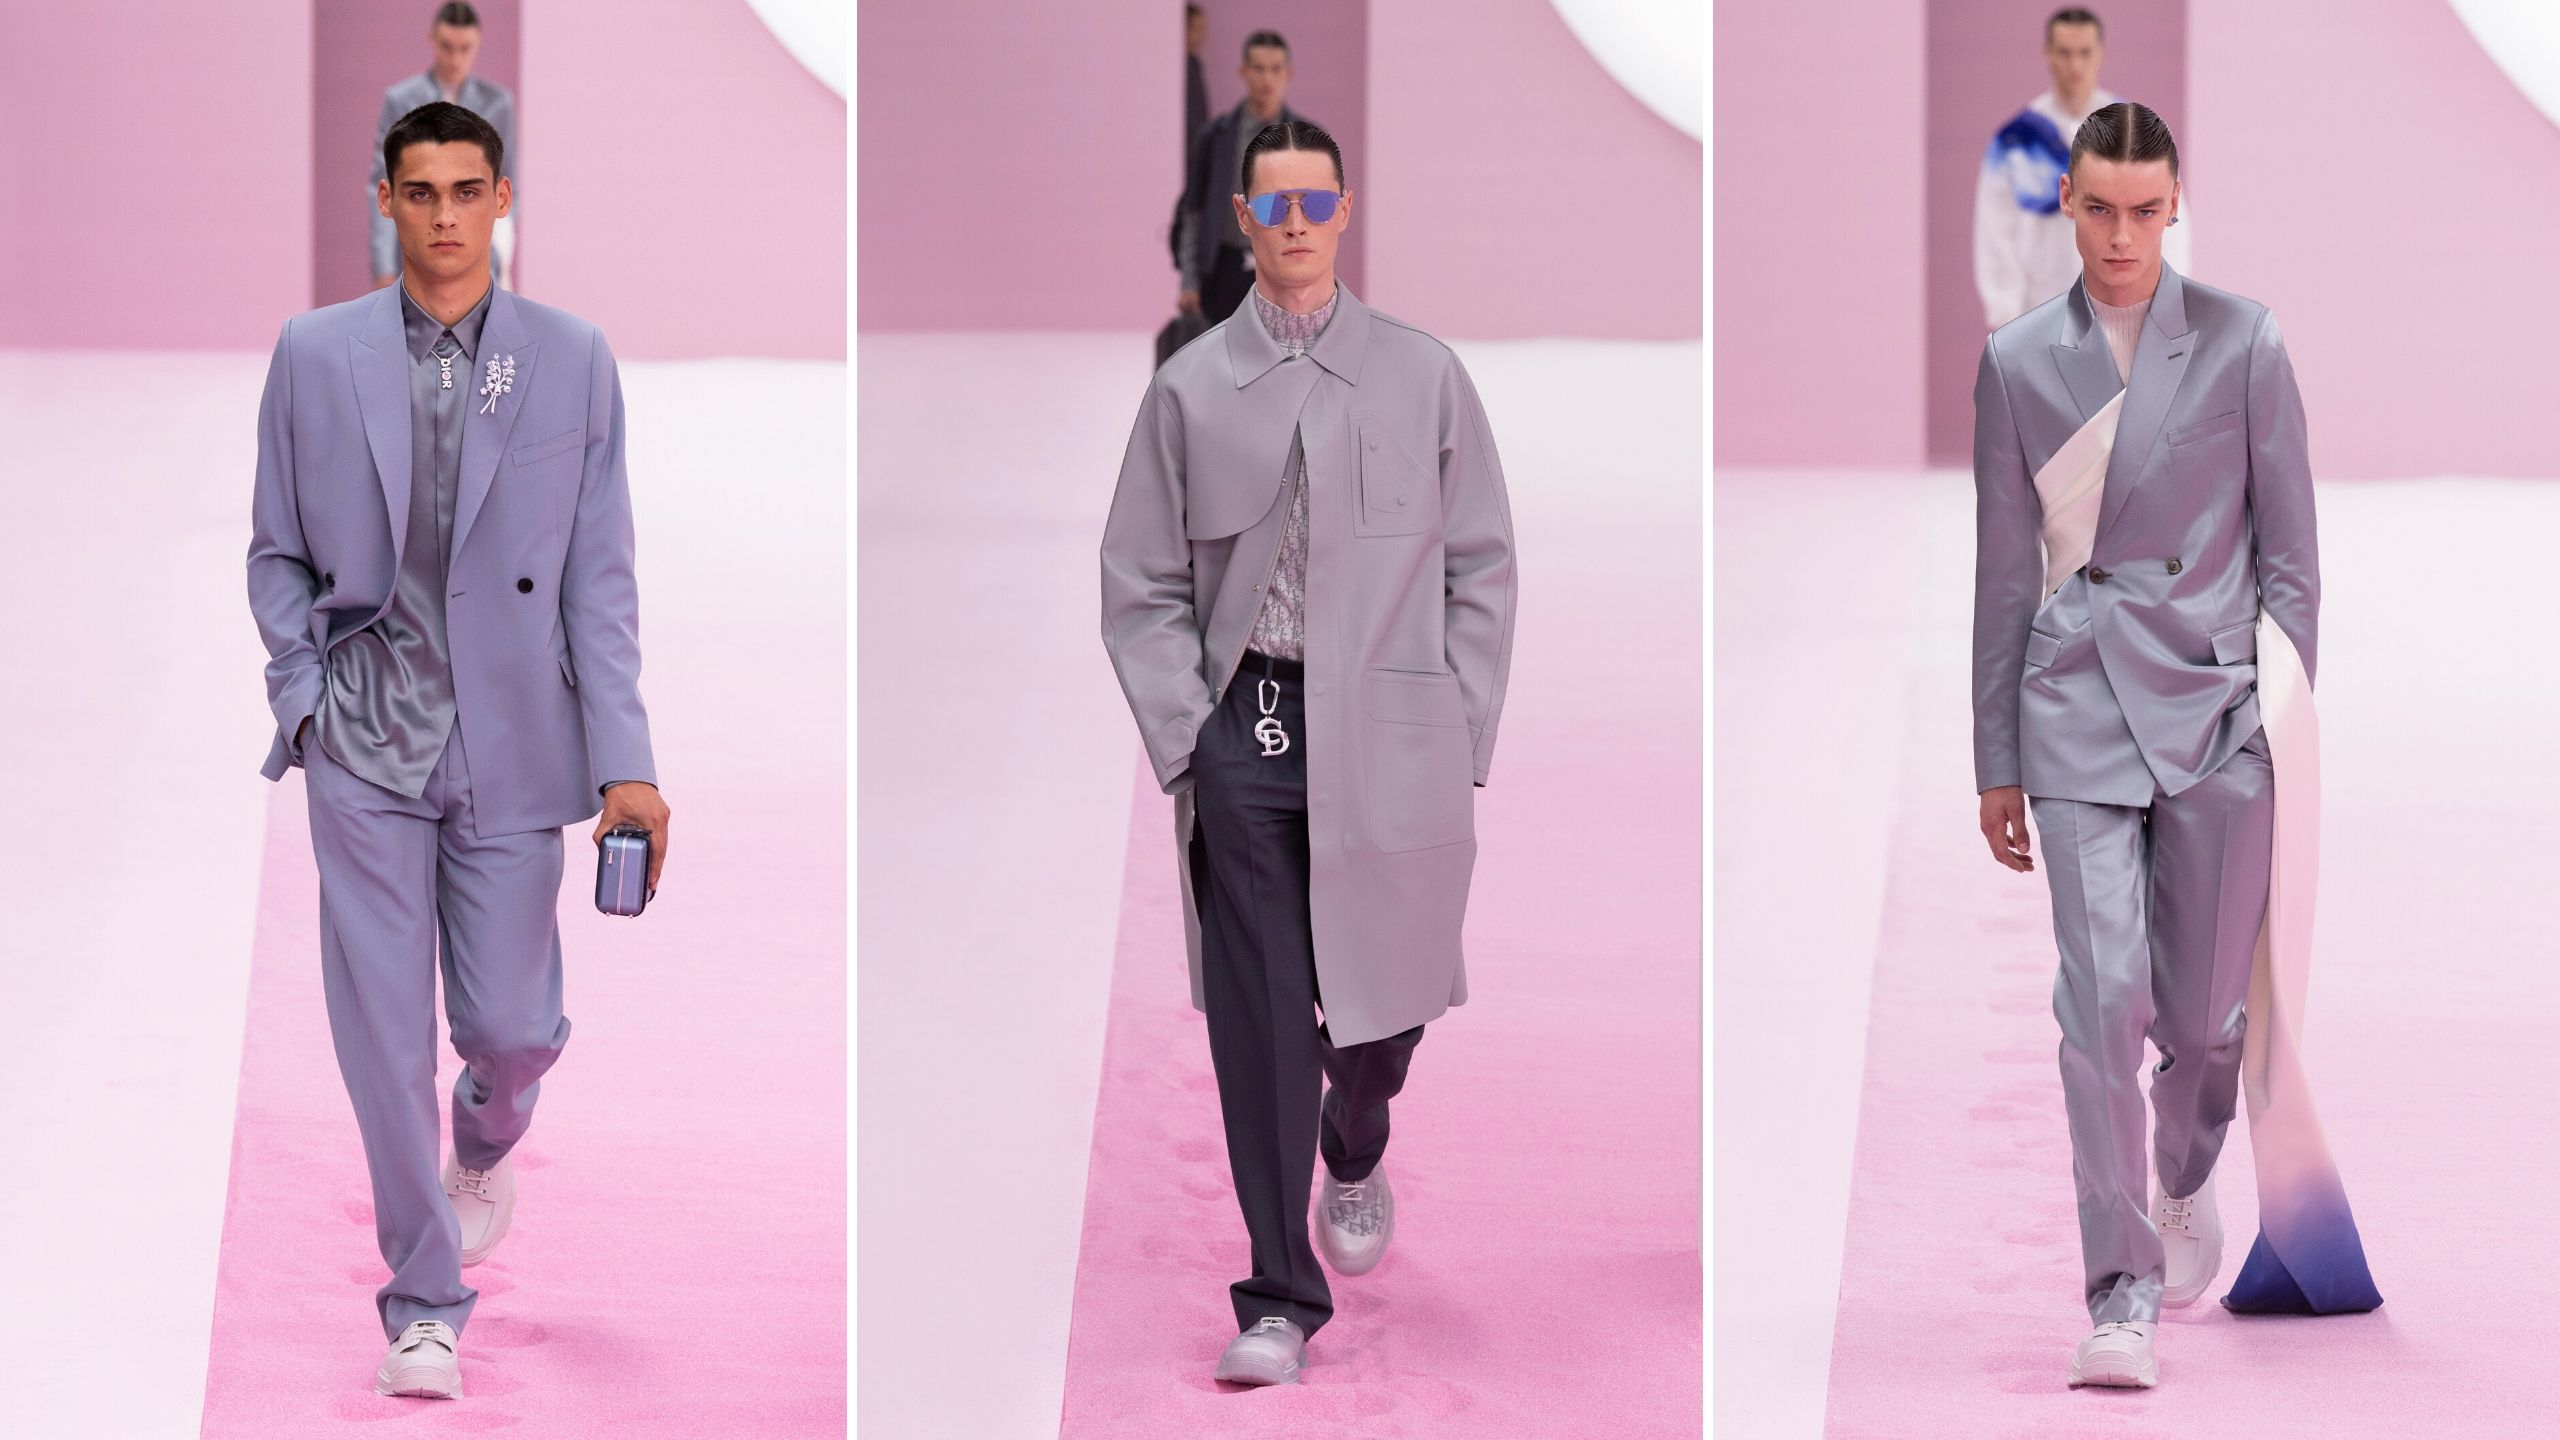 Dior Men Summer 2020: An Interplay Between Past, Present And Future